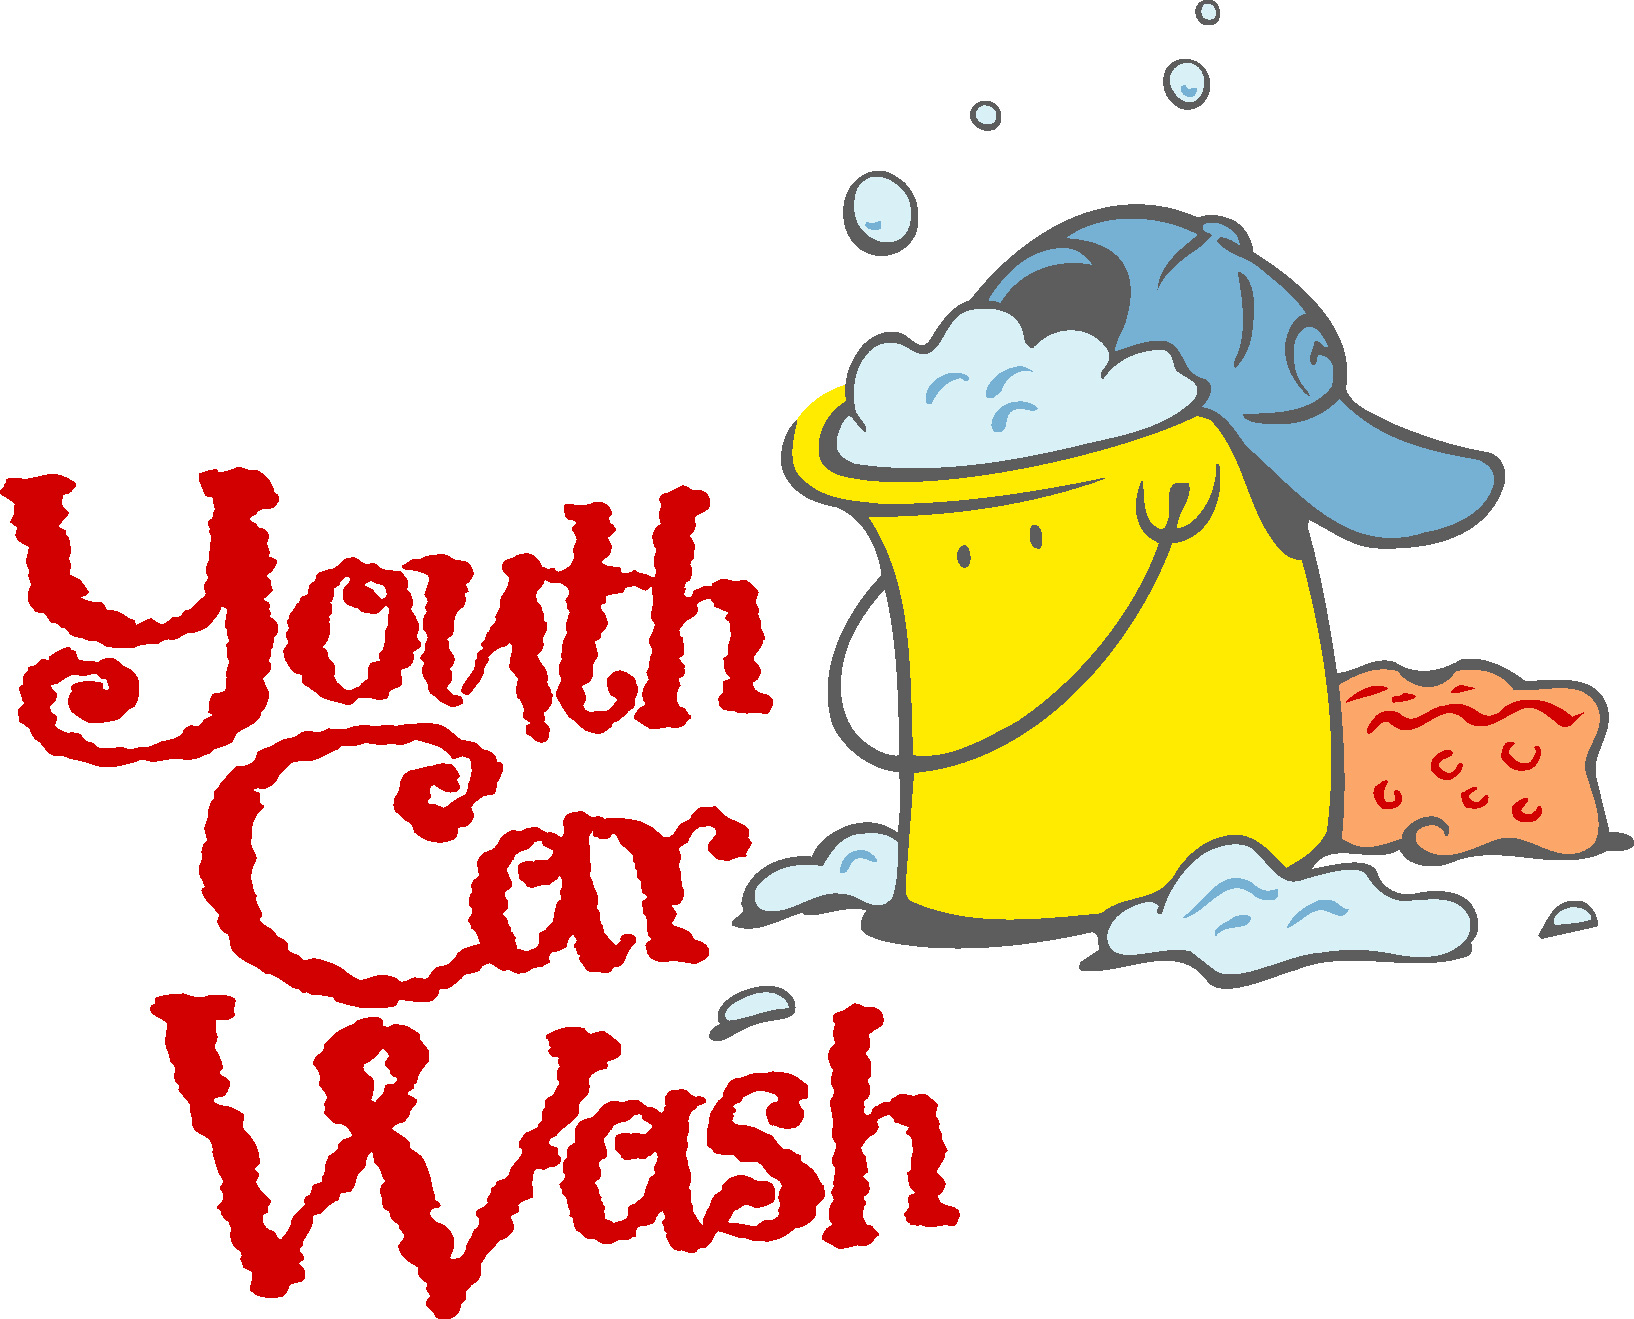 free clipart of car wash - photo #20